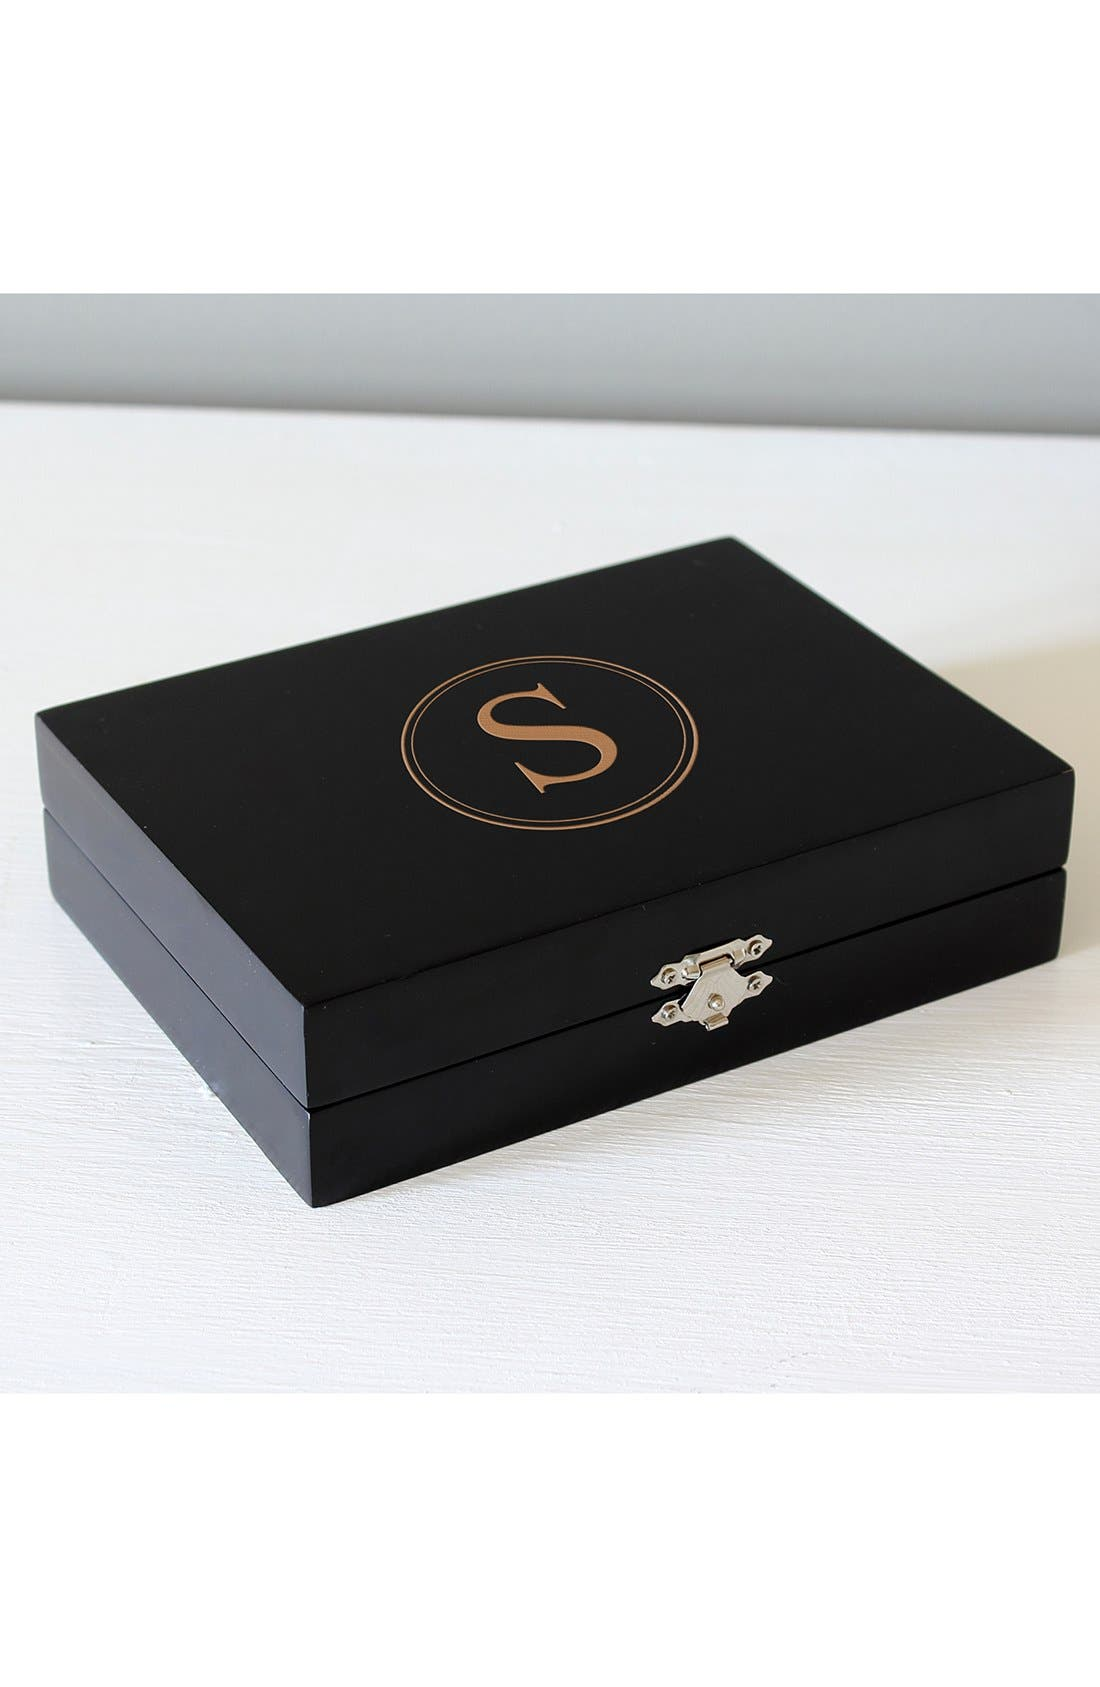 Main Image - Cathy's Concepts Monogram Wooden Jewelry Box